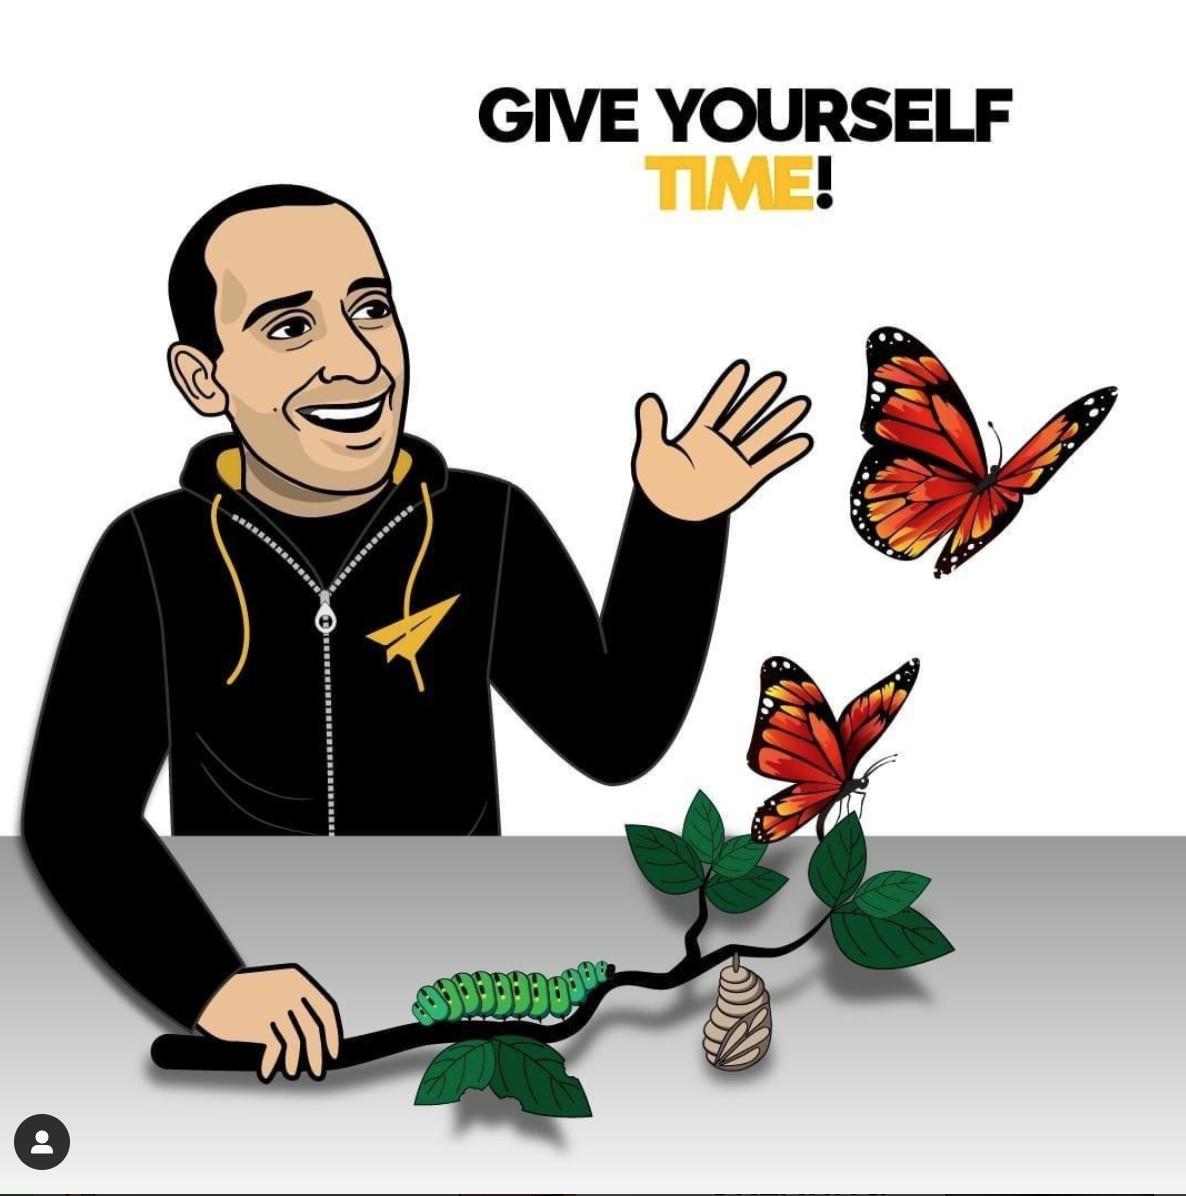 [Image] Follow the example of the caterpillar that becomes a beautiful butterfly by giving yourself time to achieve great things in life